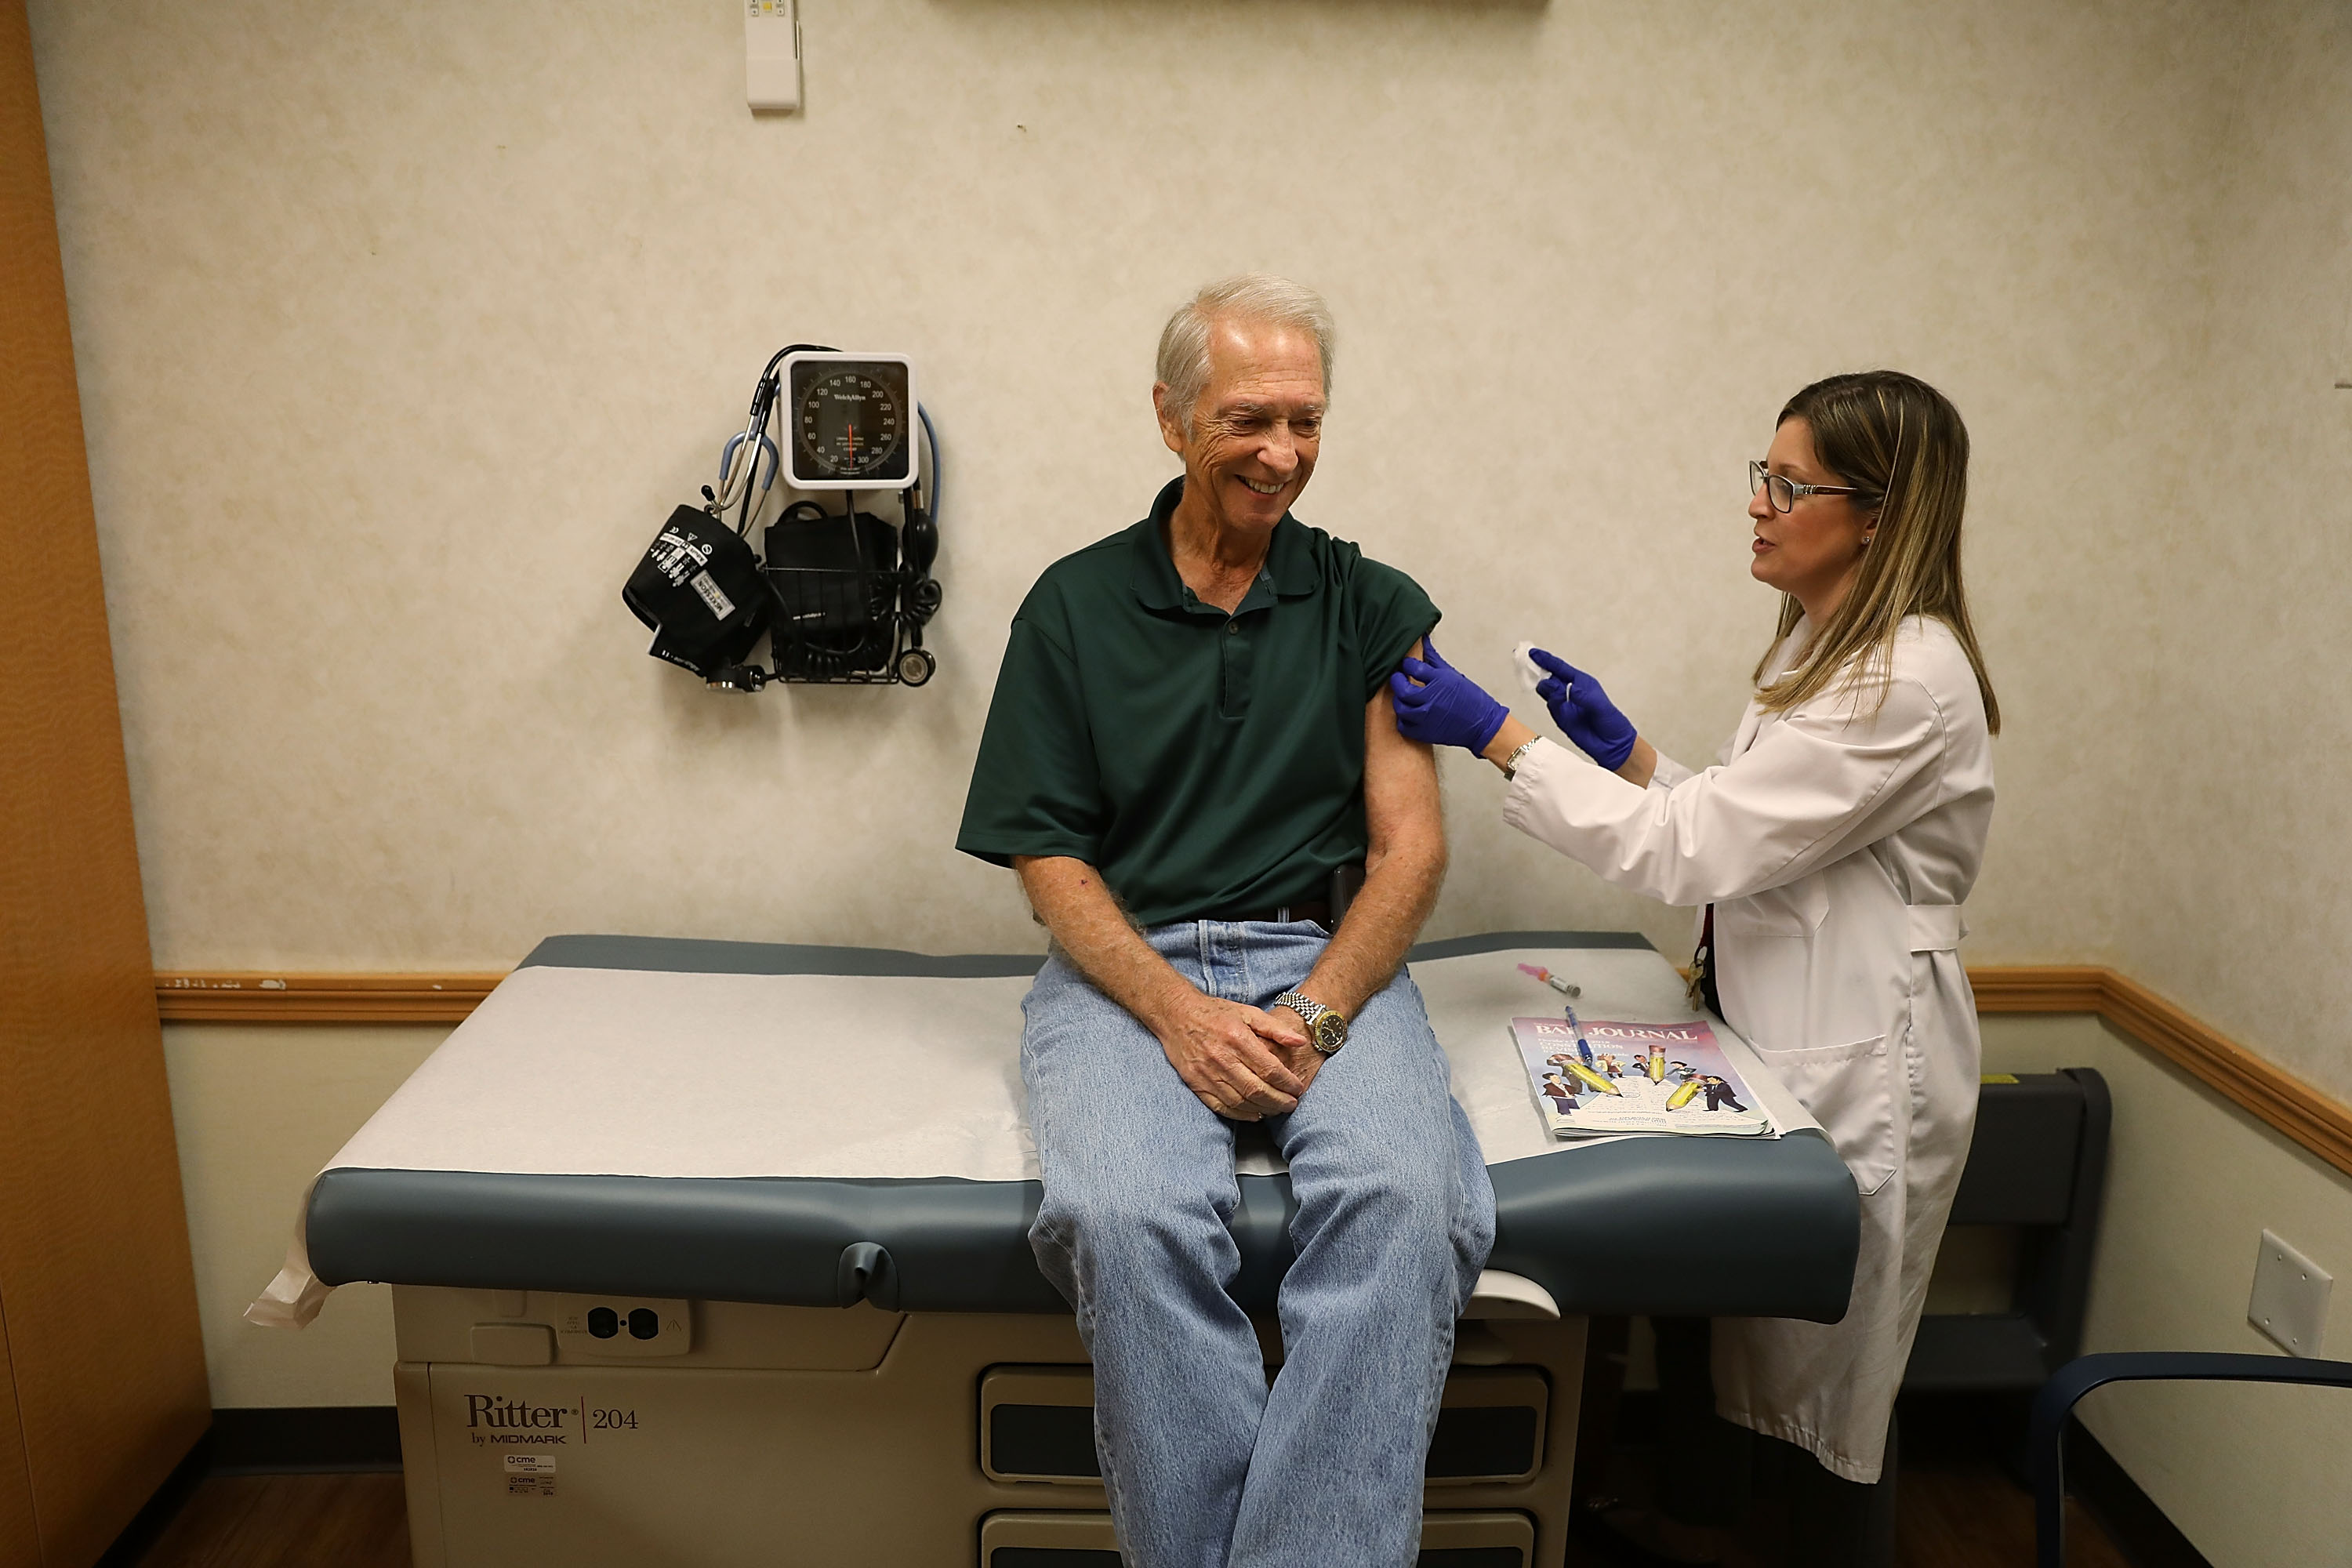 Stuart Goldstein receives an influenza vaccination from nurse practitioner, Katherine Male, at the CVS Pharmacy store's MinuteClinic on October 4, 2018 in Miami, Florida. Joe Raedle/Getty Images